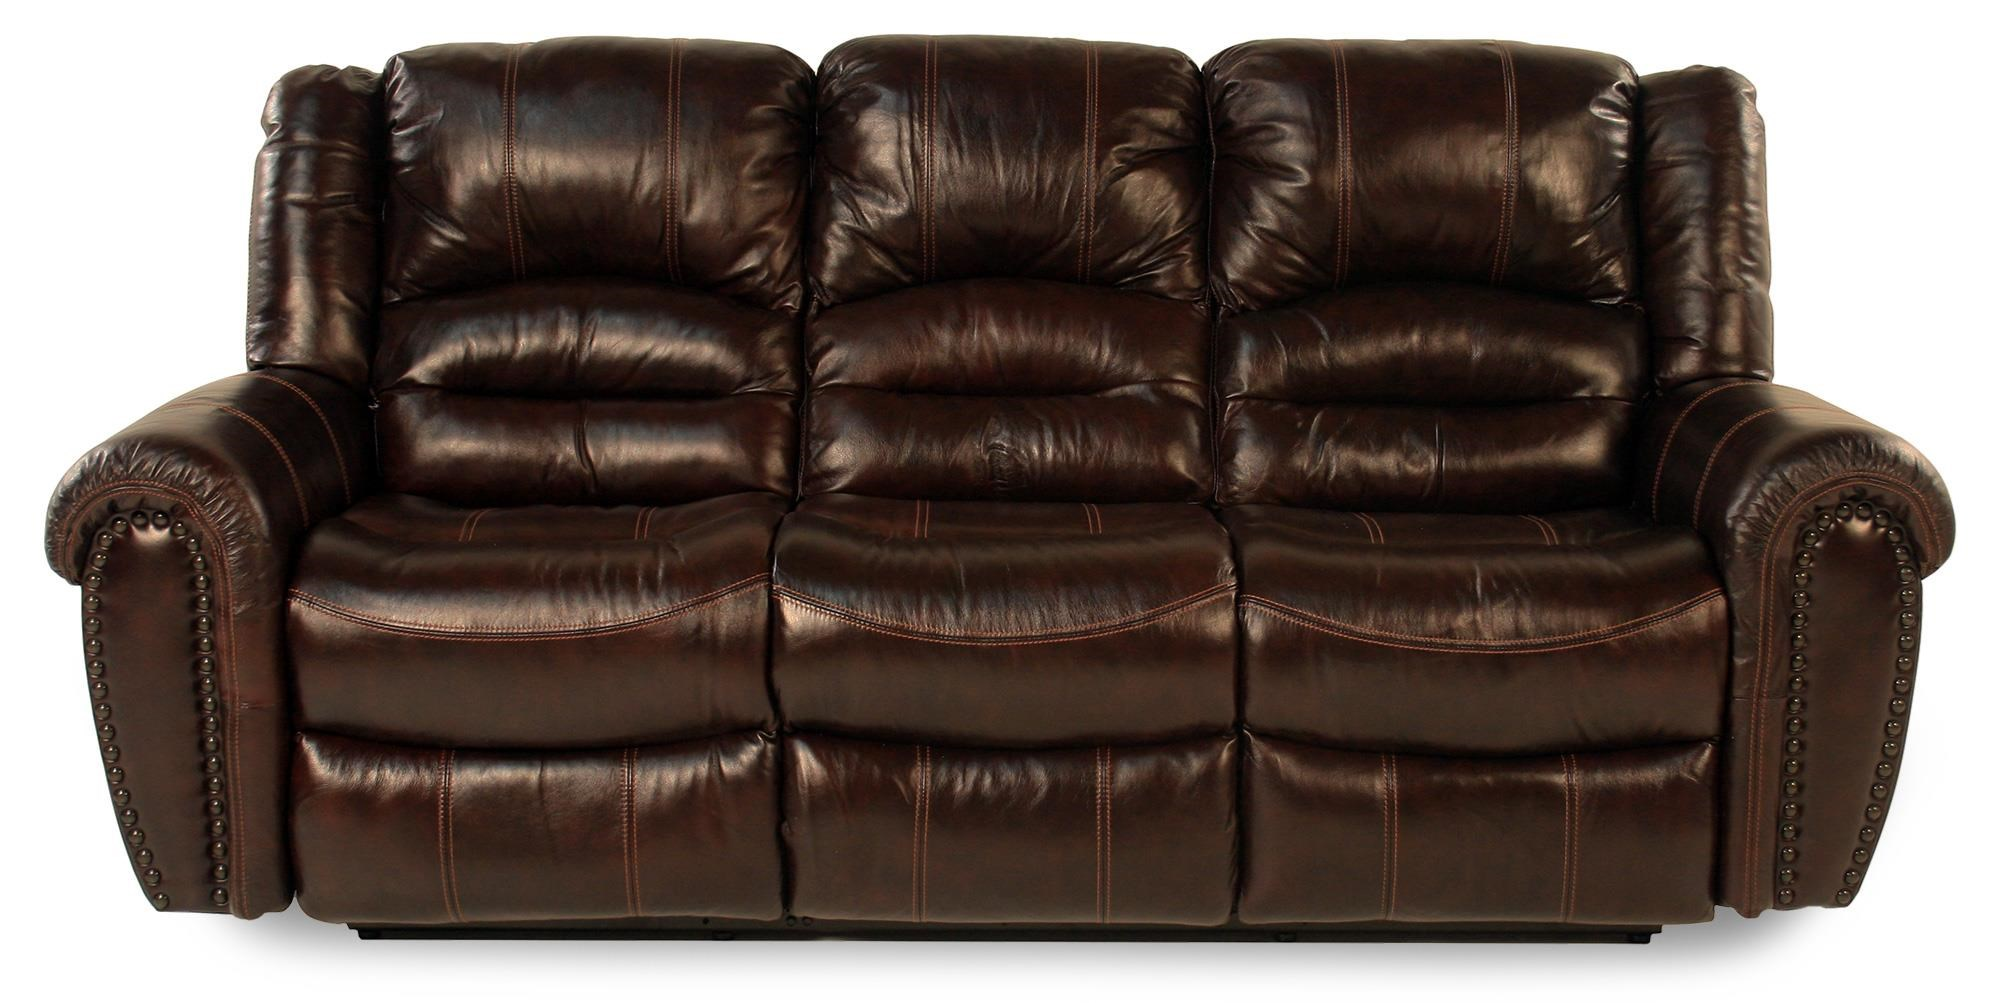 Lancer Leather Reclining Sofa